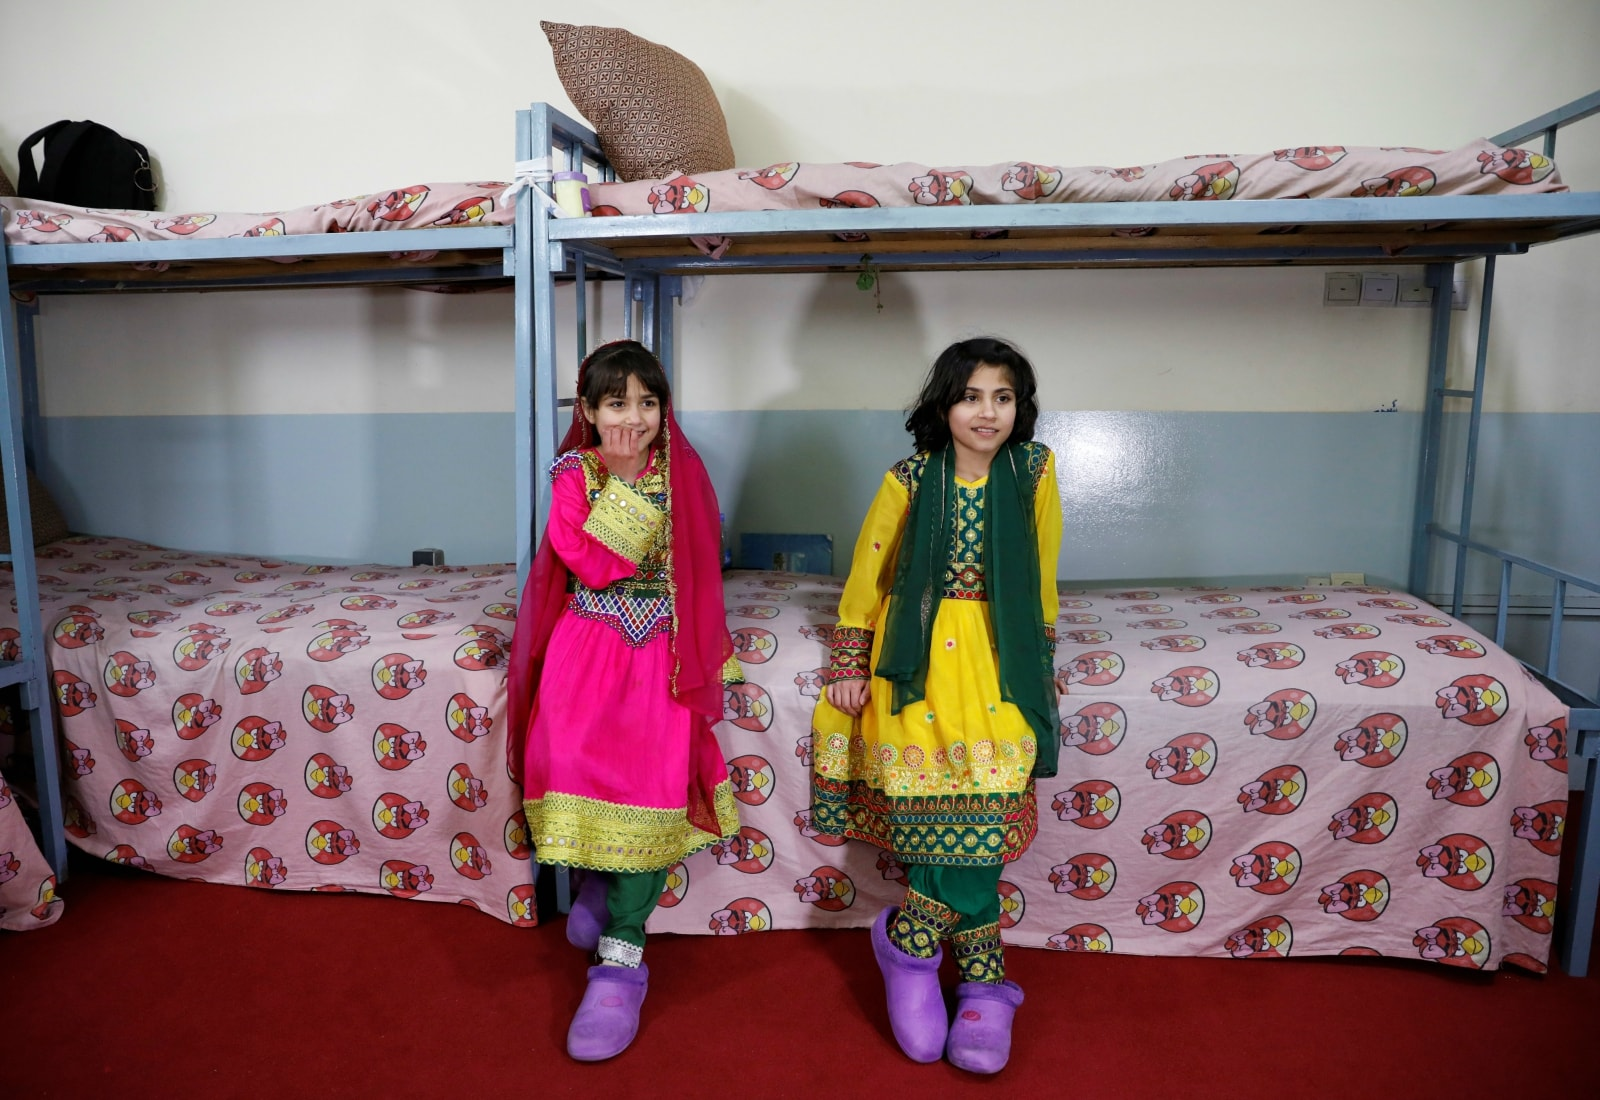 Afghan girls sit on a bed at an Afghan Child Education and Care Organization center (AFCECO) in Kabul, Afghanistan March 3, 2019. REUTERS/Mohammad Ismail